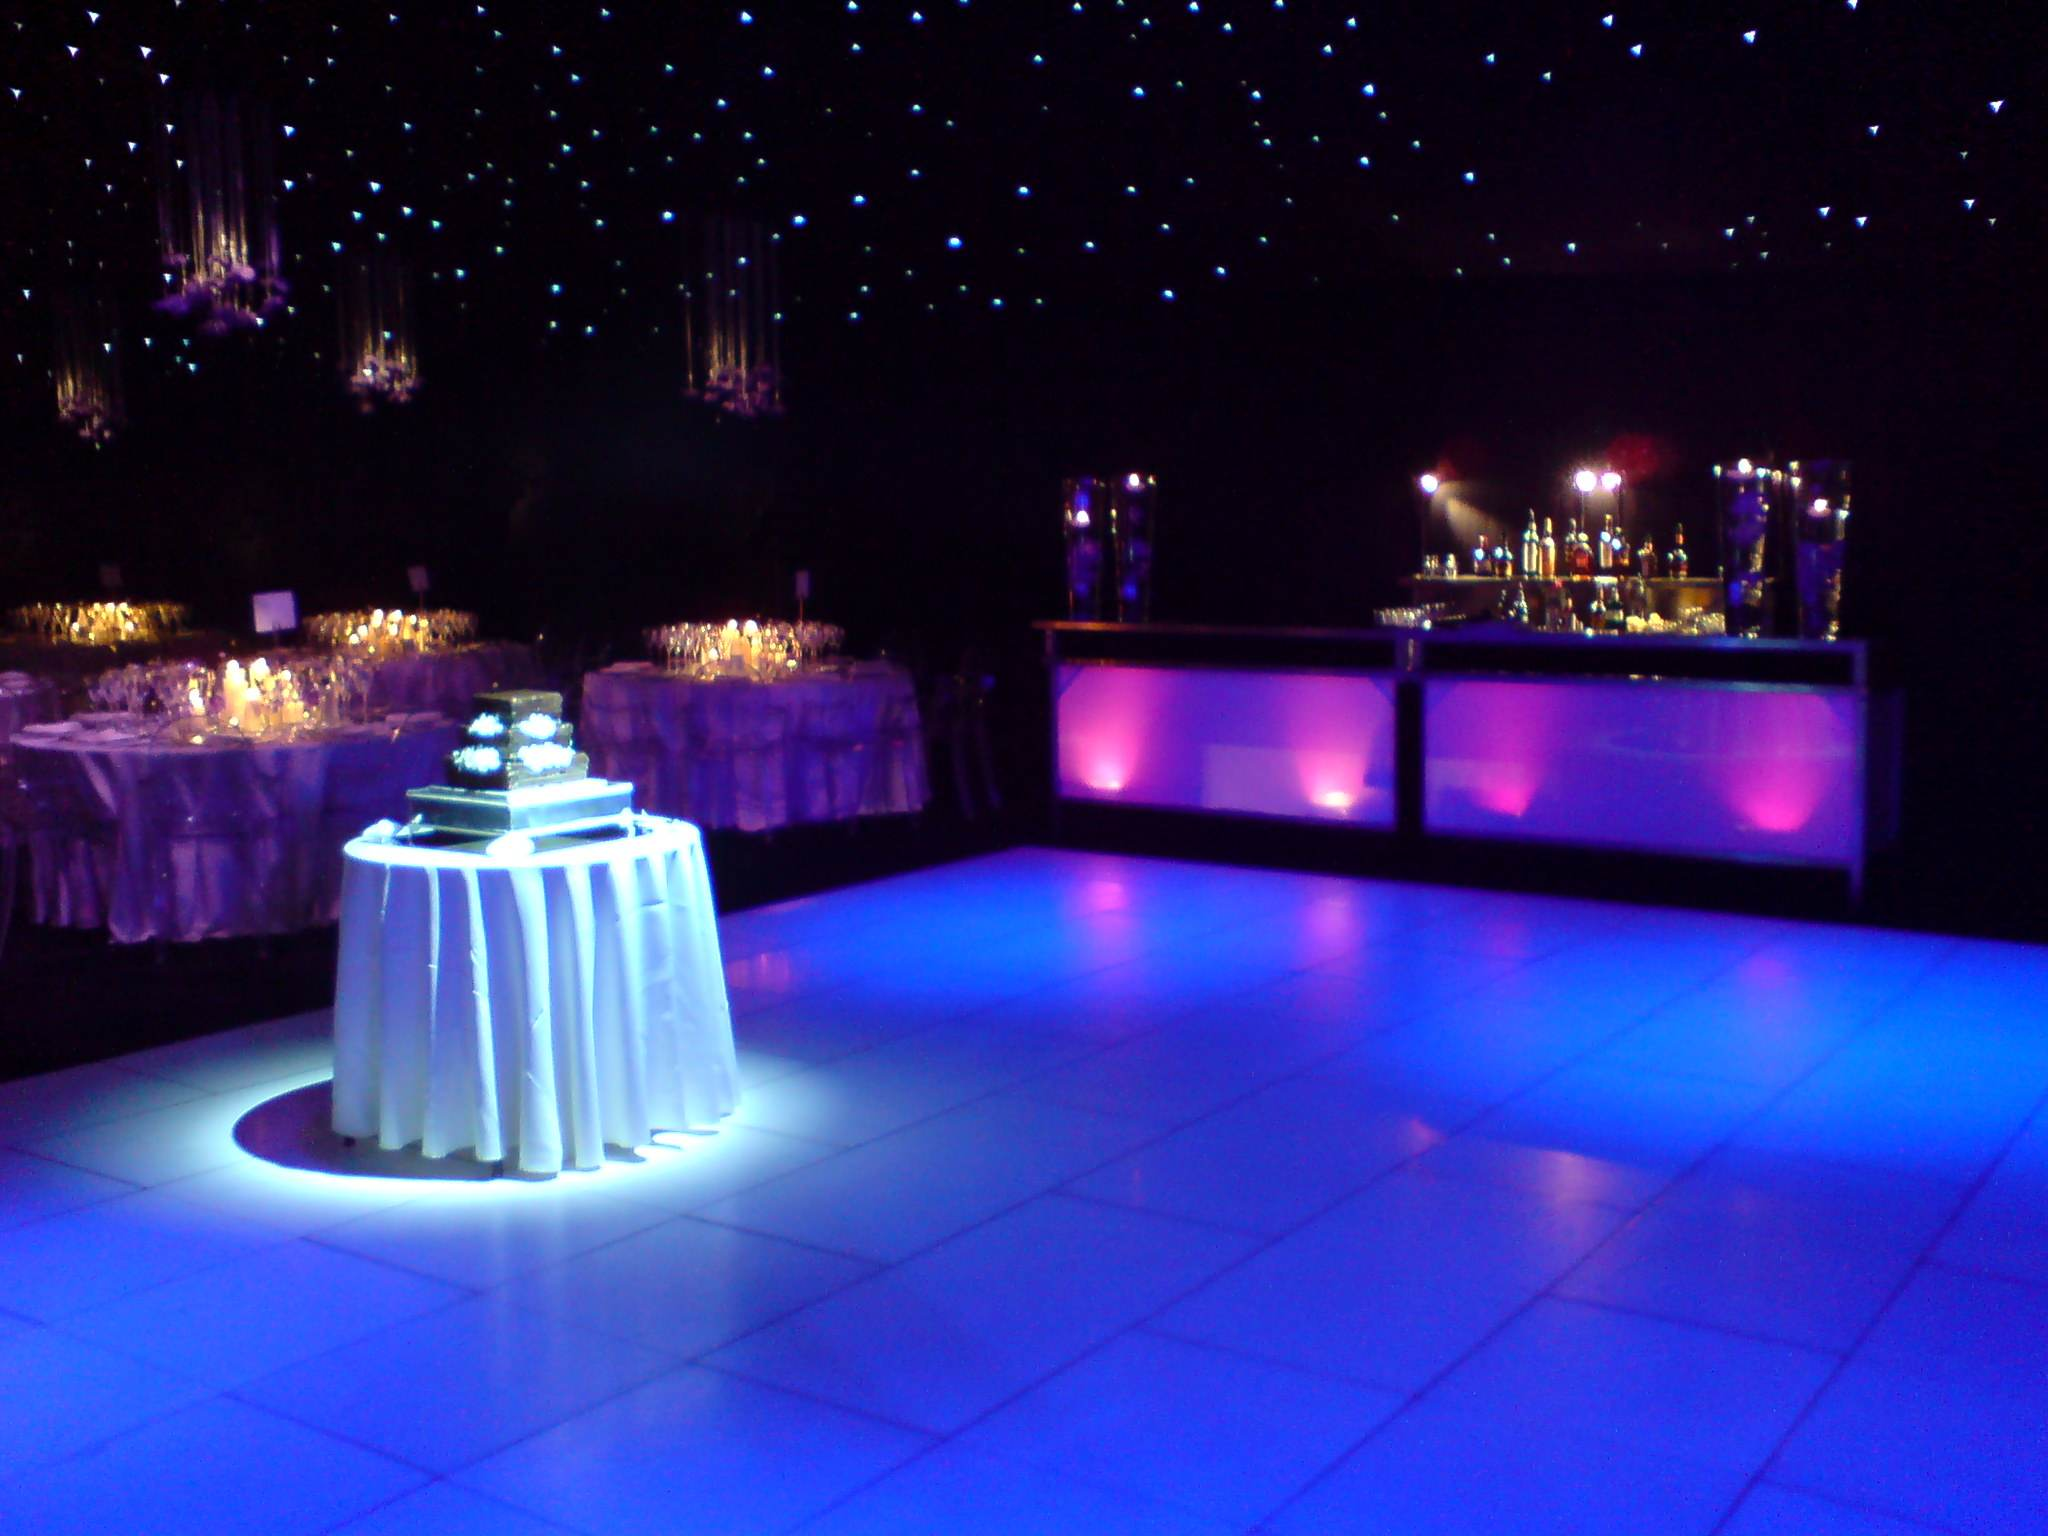 Wedding Hire - Wedding Cake on dancefloor